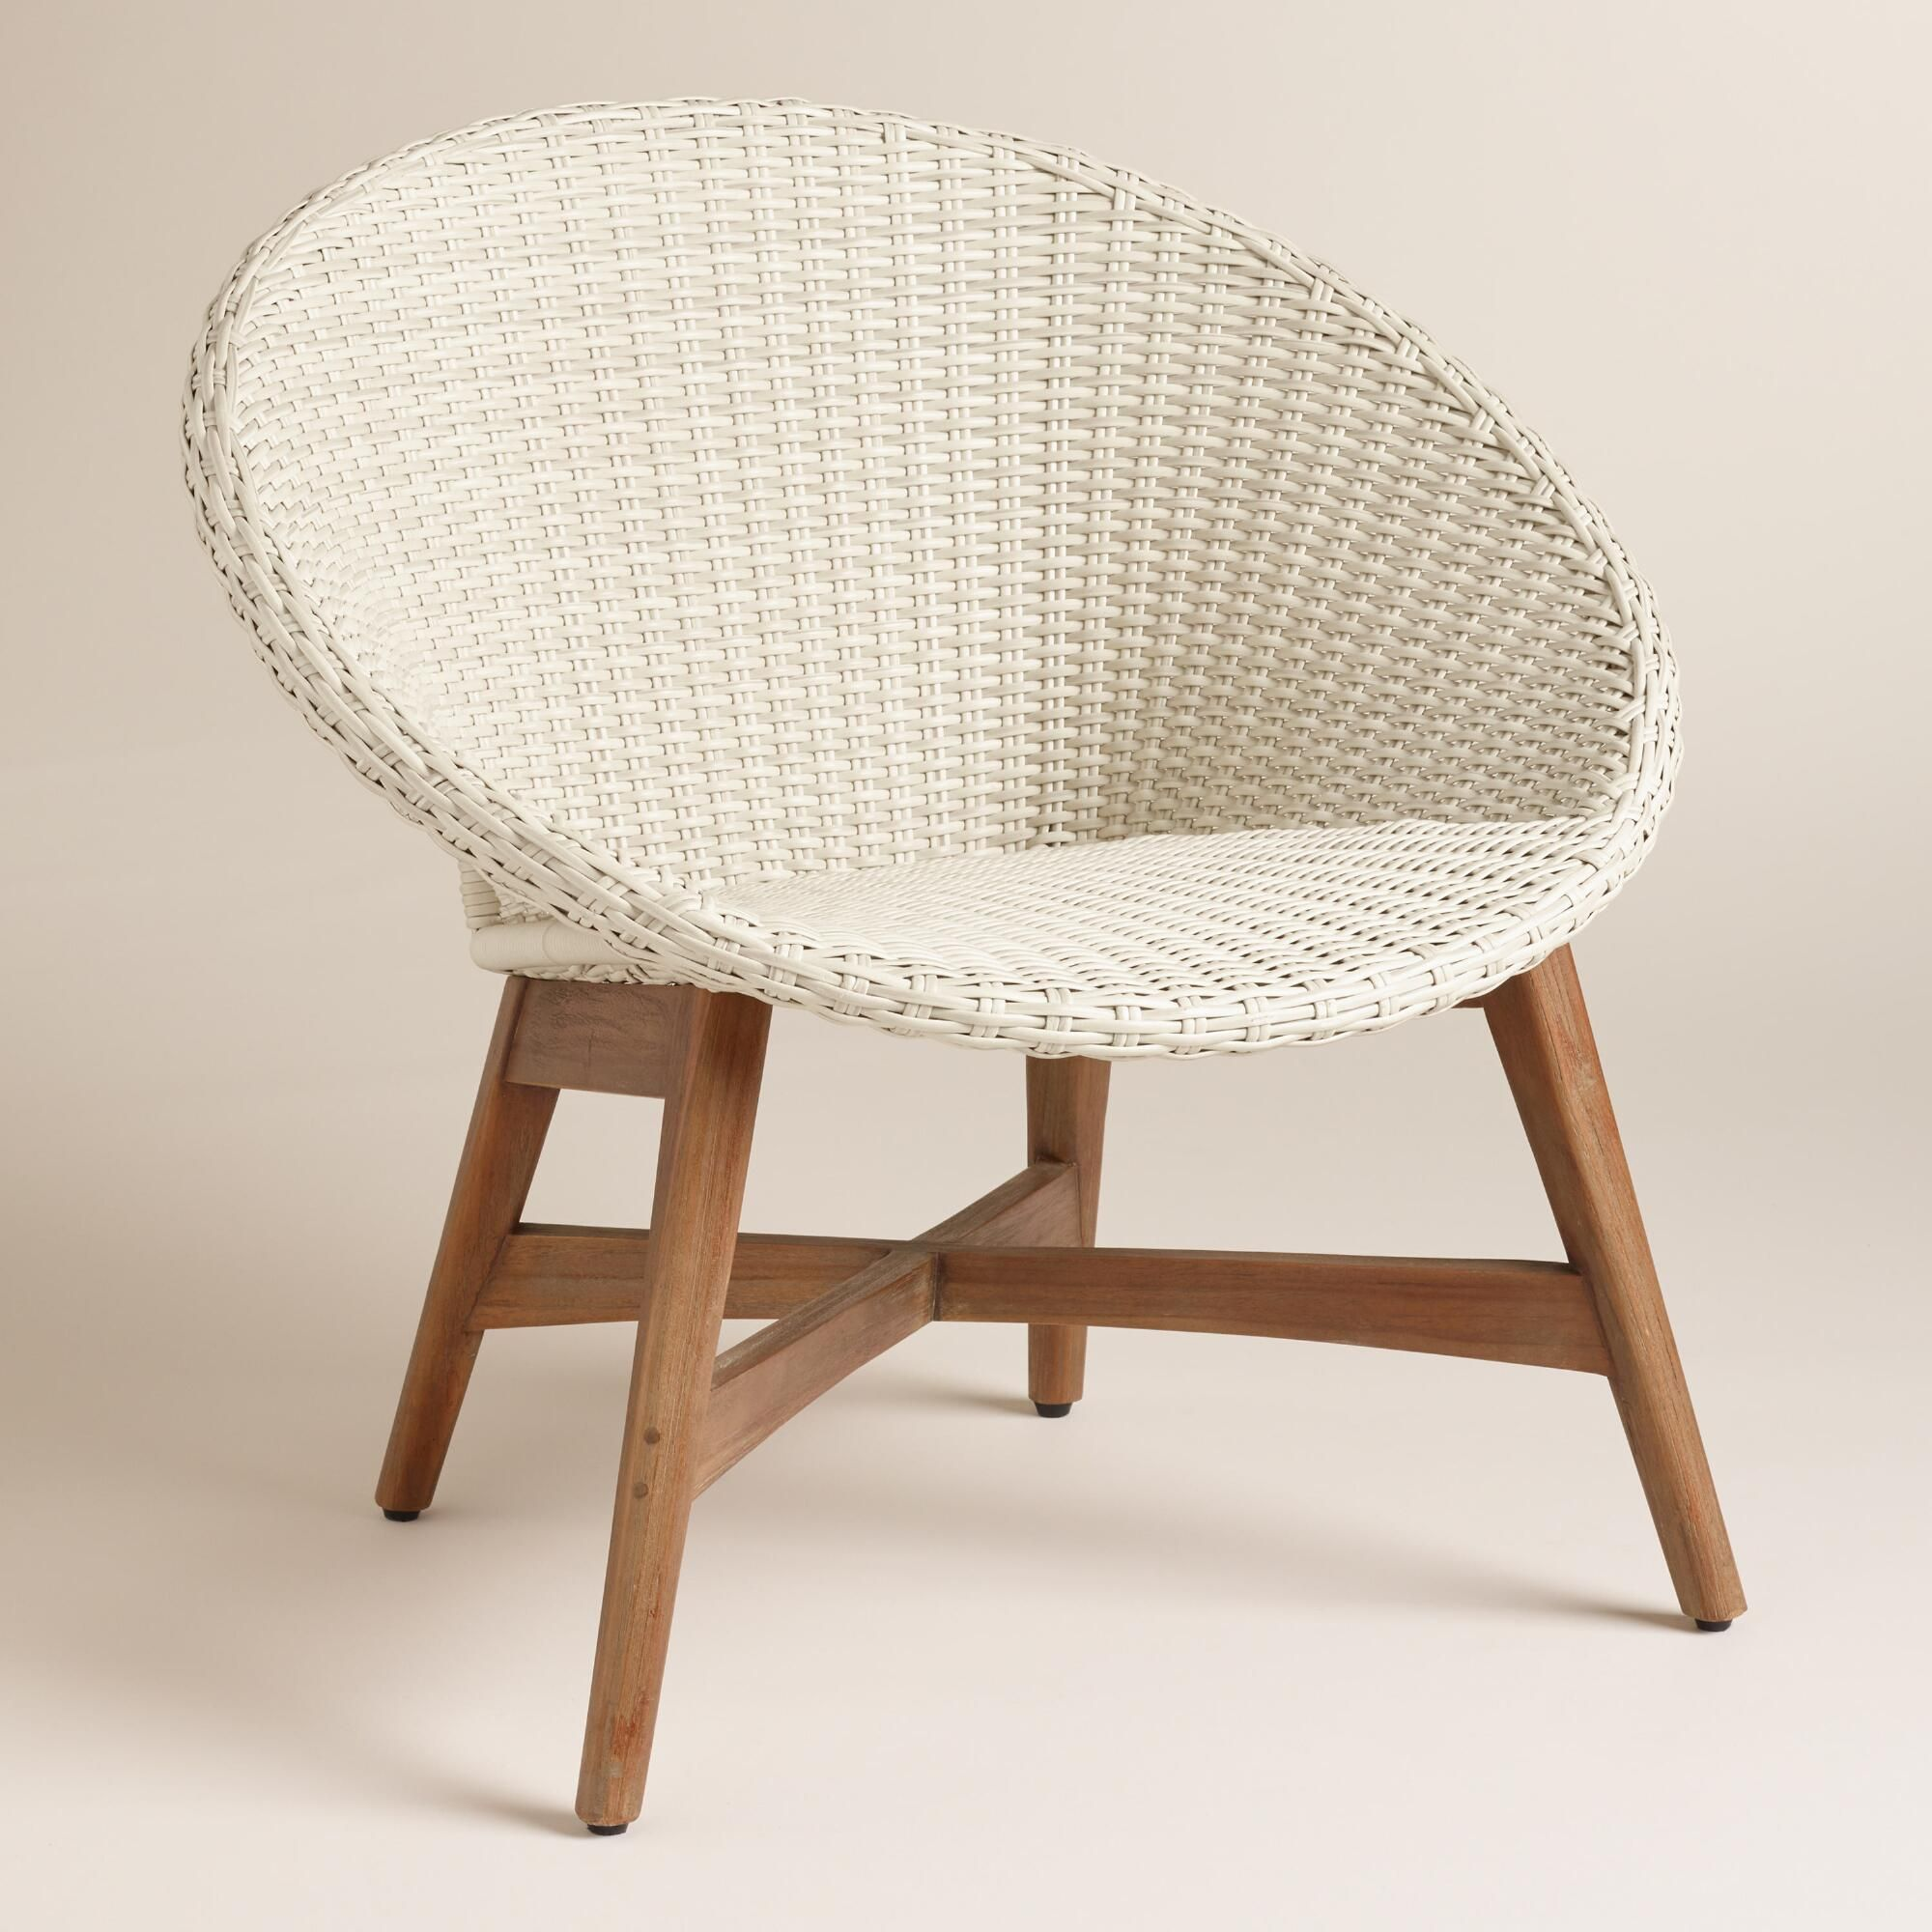 Round Outdoor Chair Round All Weather Wicker Vernazza Chairs Set Of 2 By